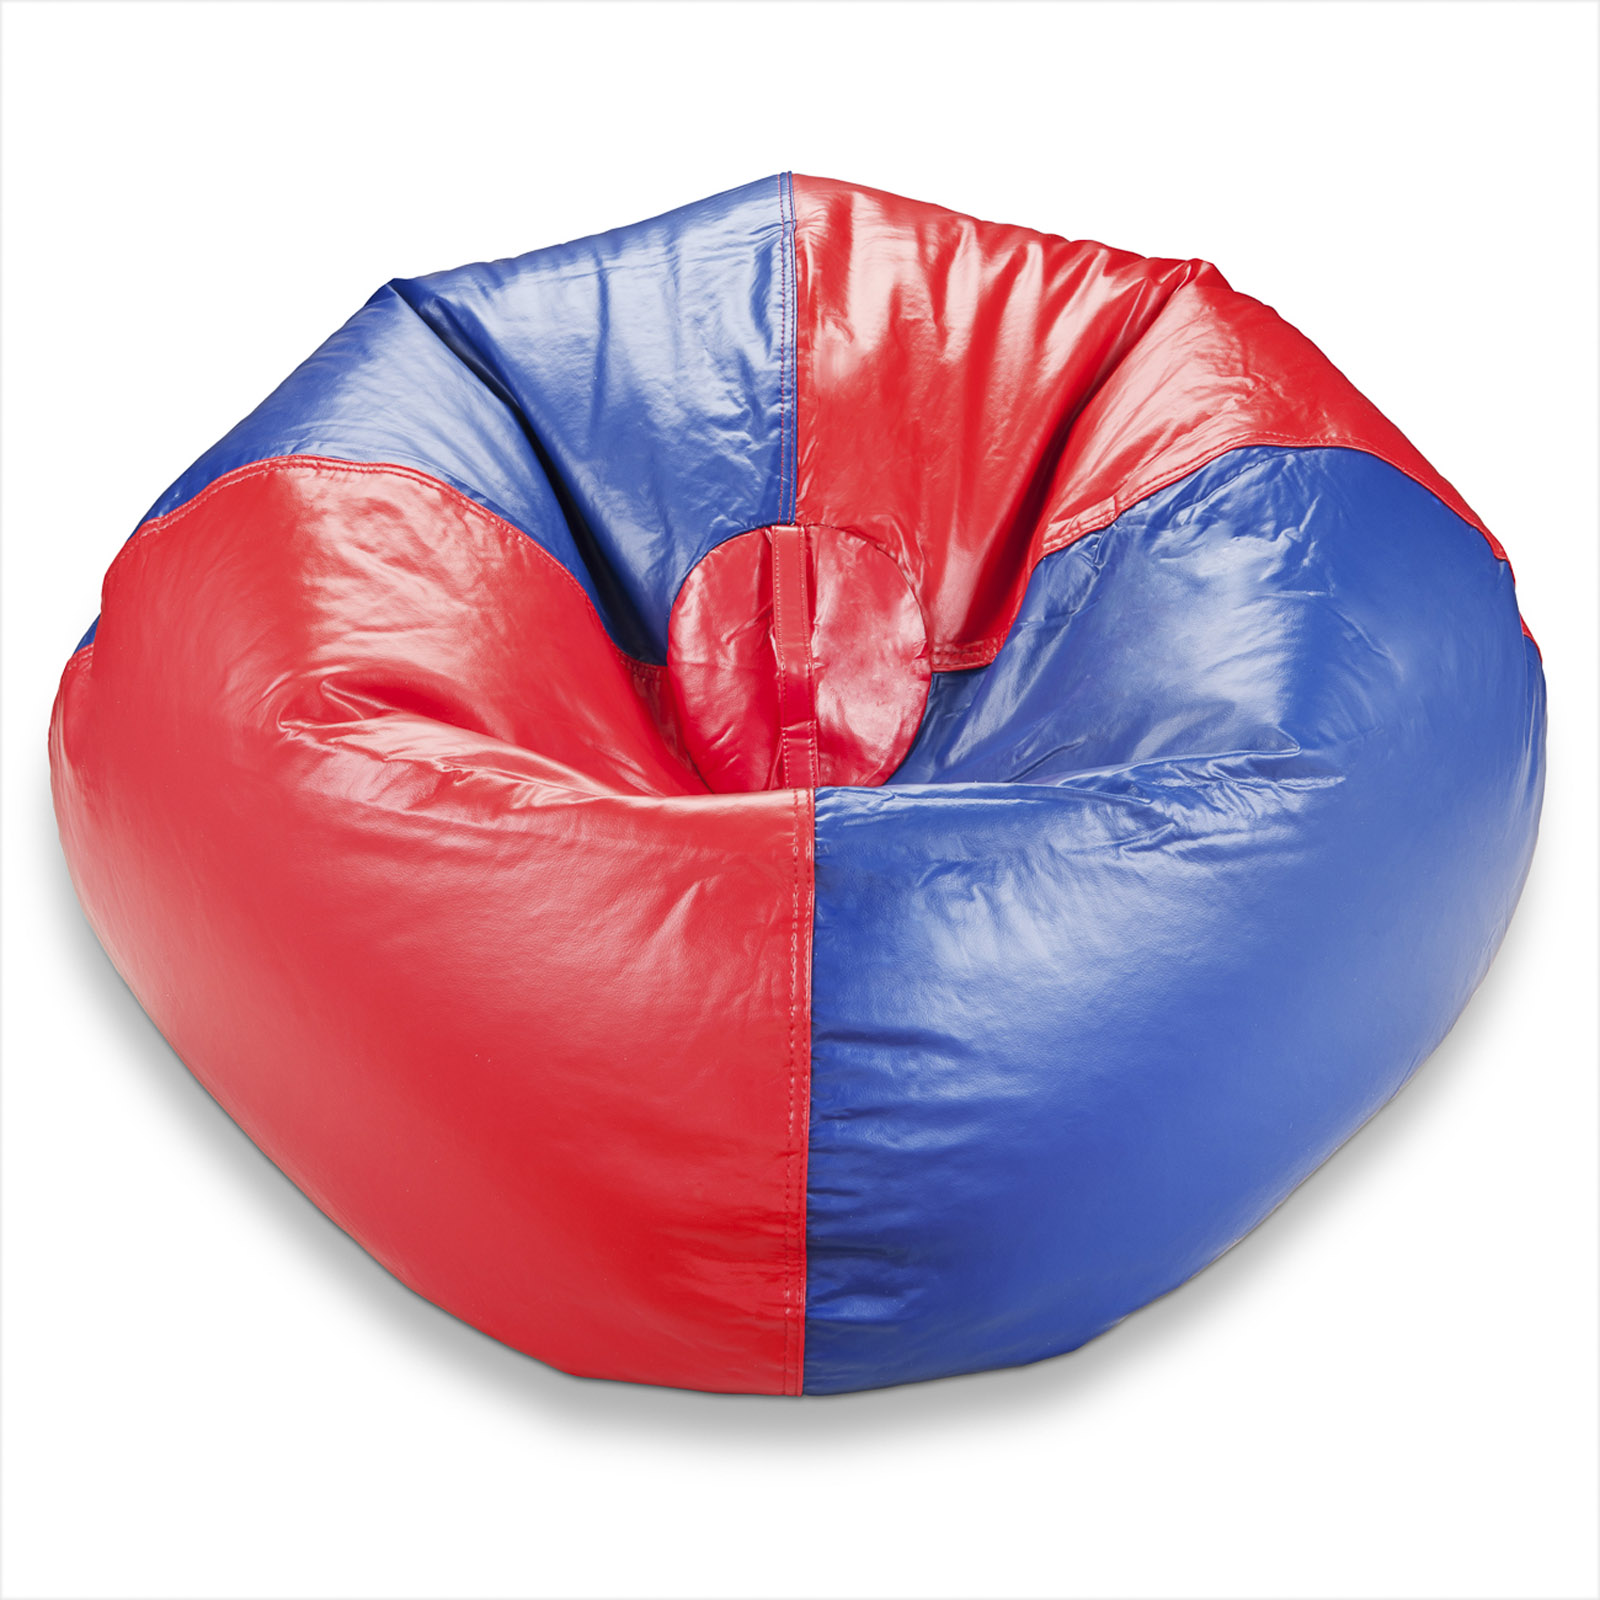 BlueRed Bean Bag Chair Trendy and Fun Seating at Kmart